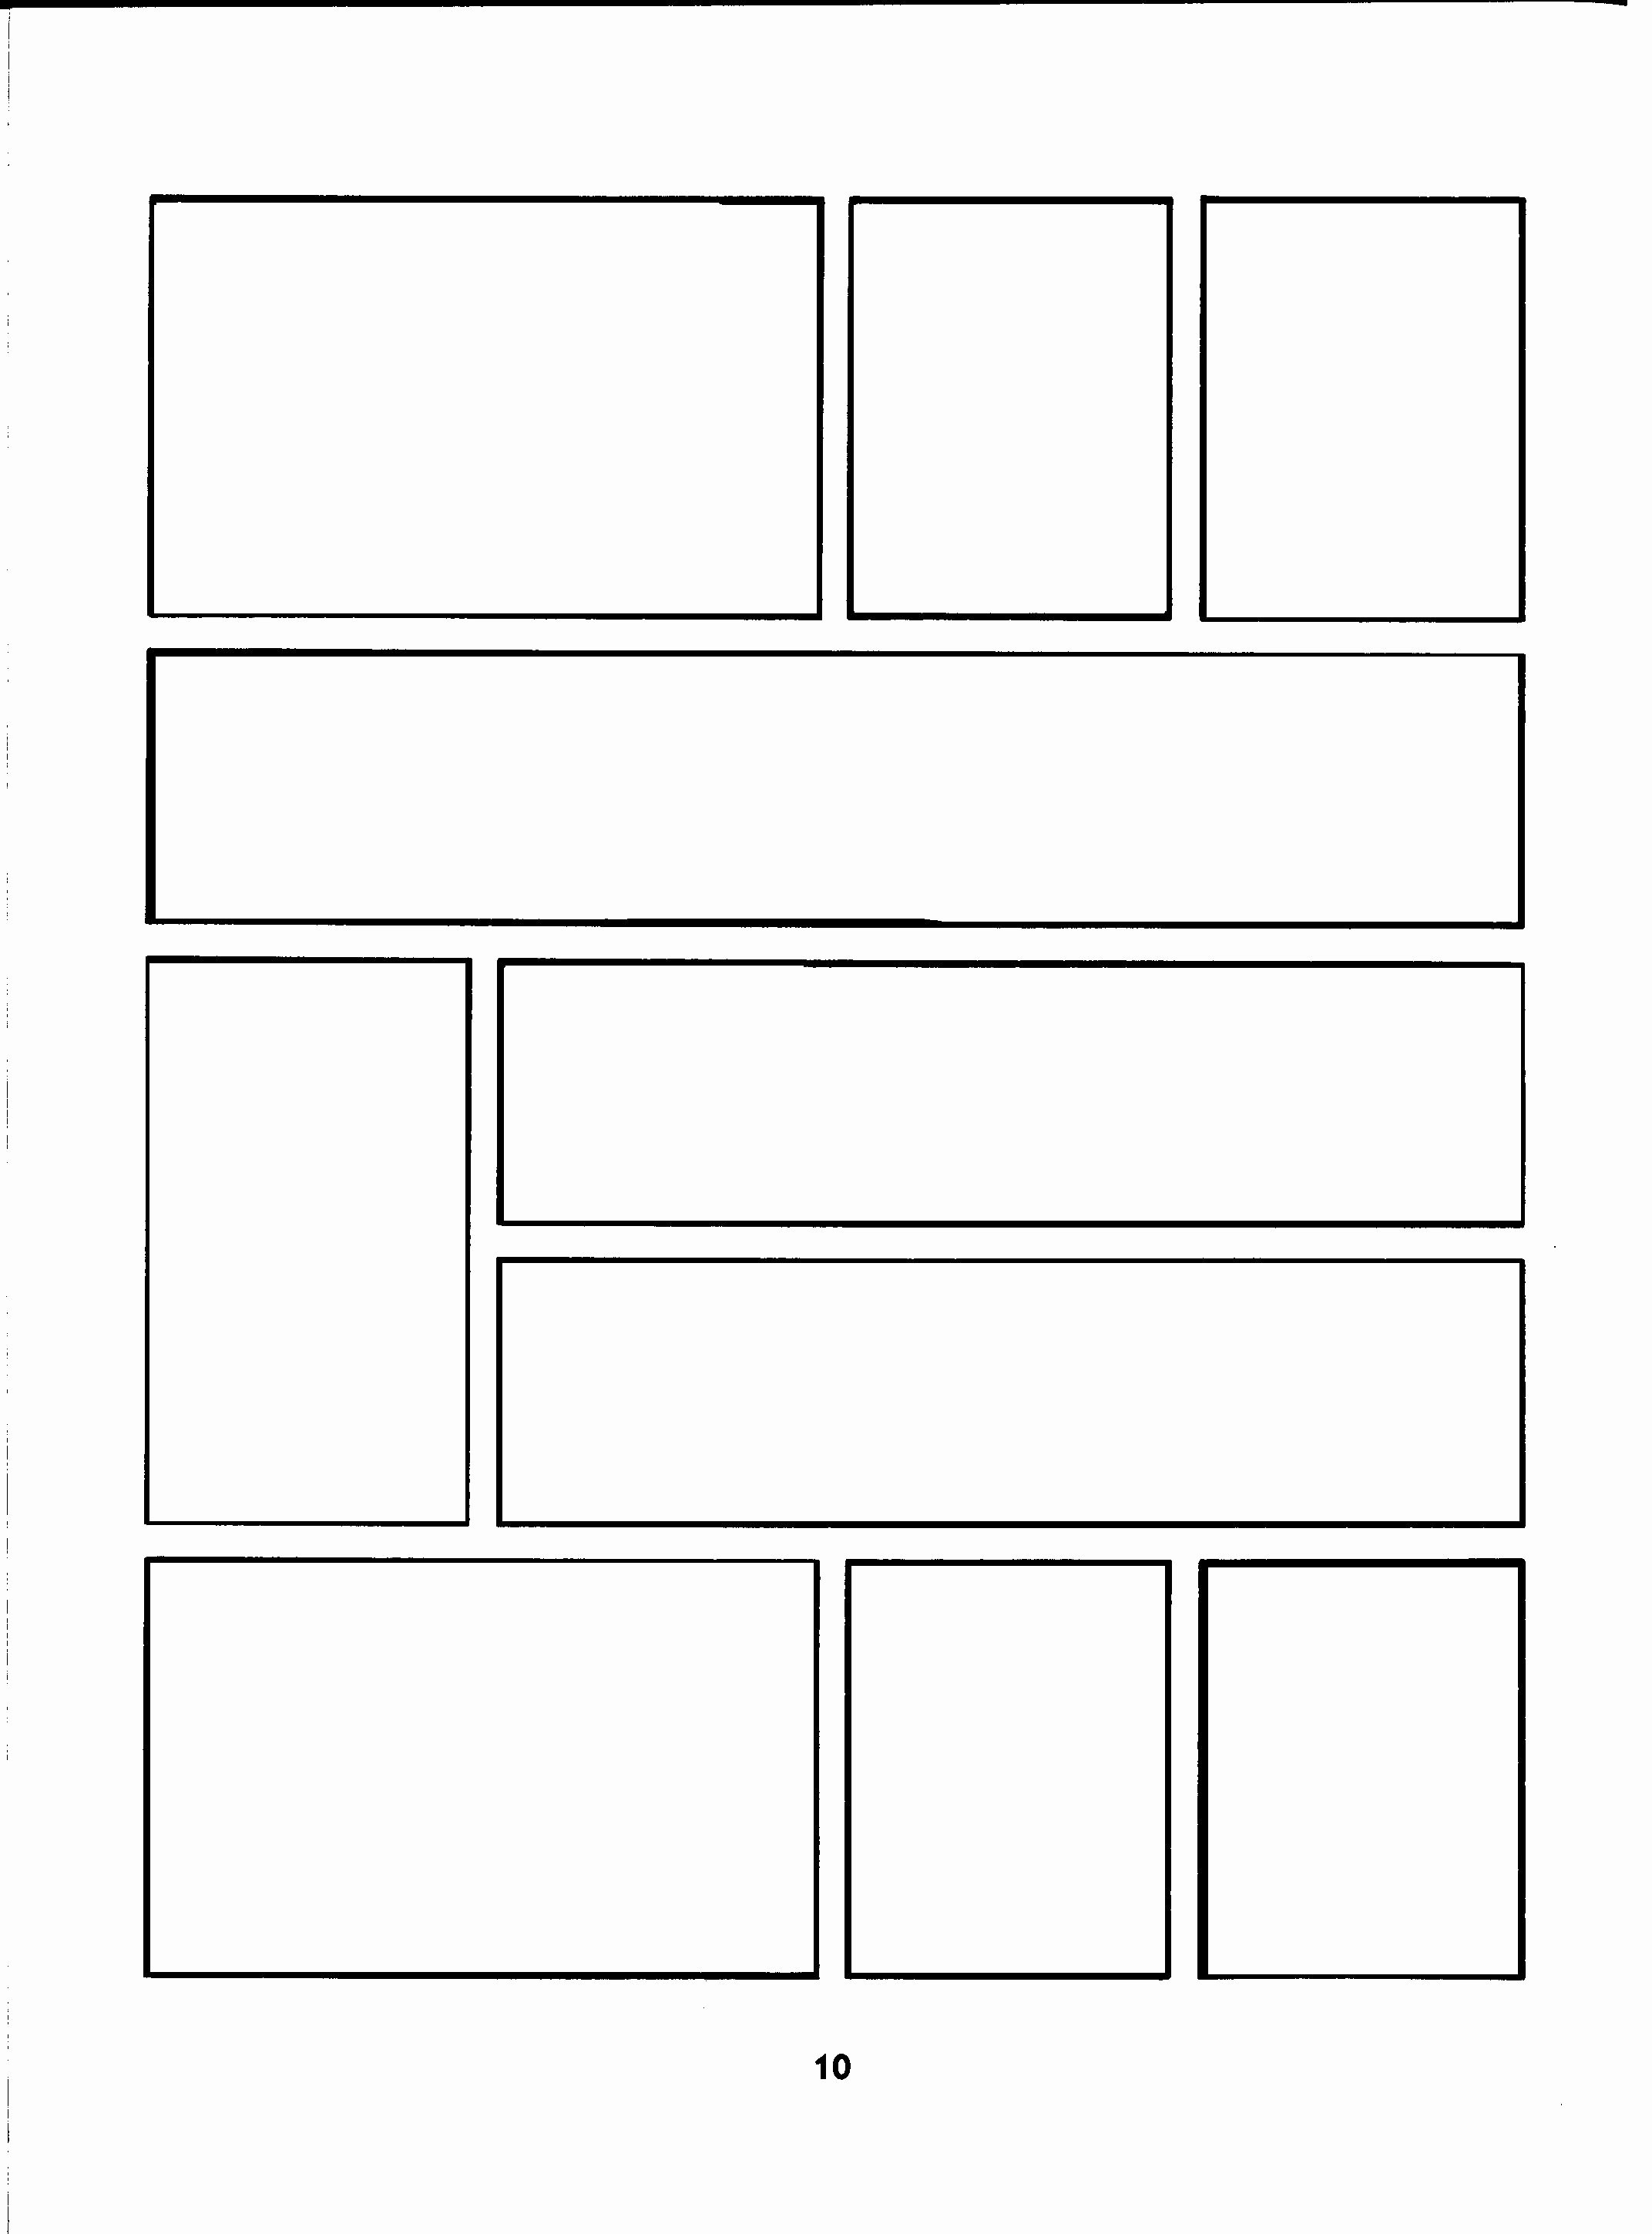 Comic Strip Template Word Fresh Ic Panel Template 18 Of 20 Ic Art